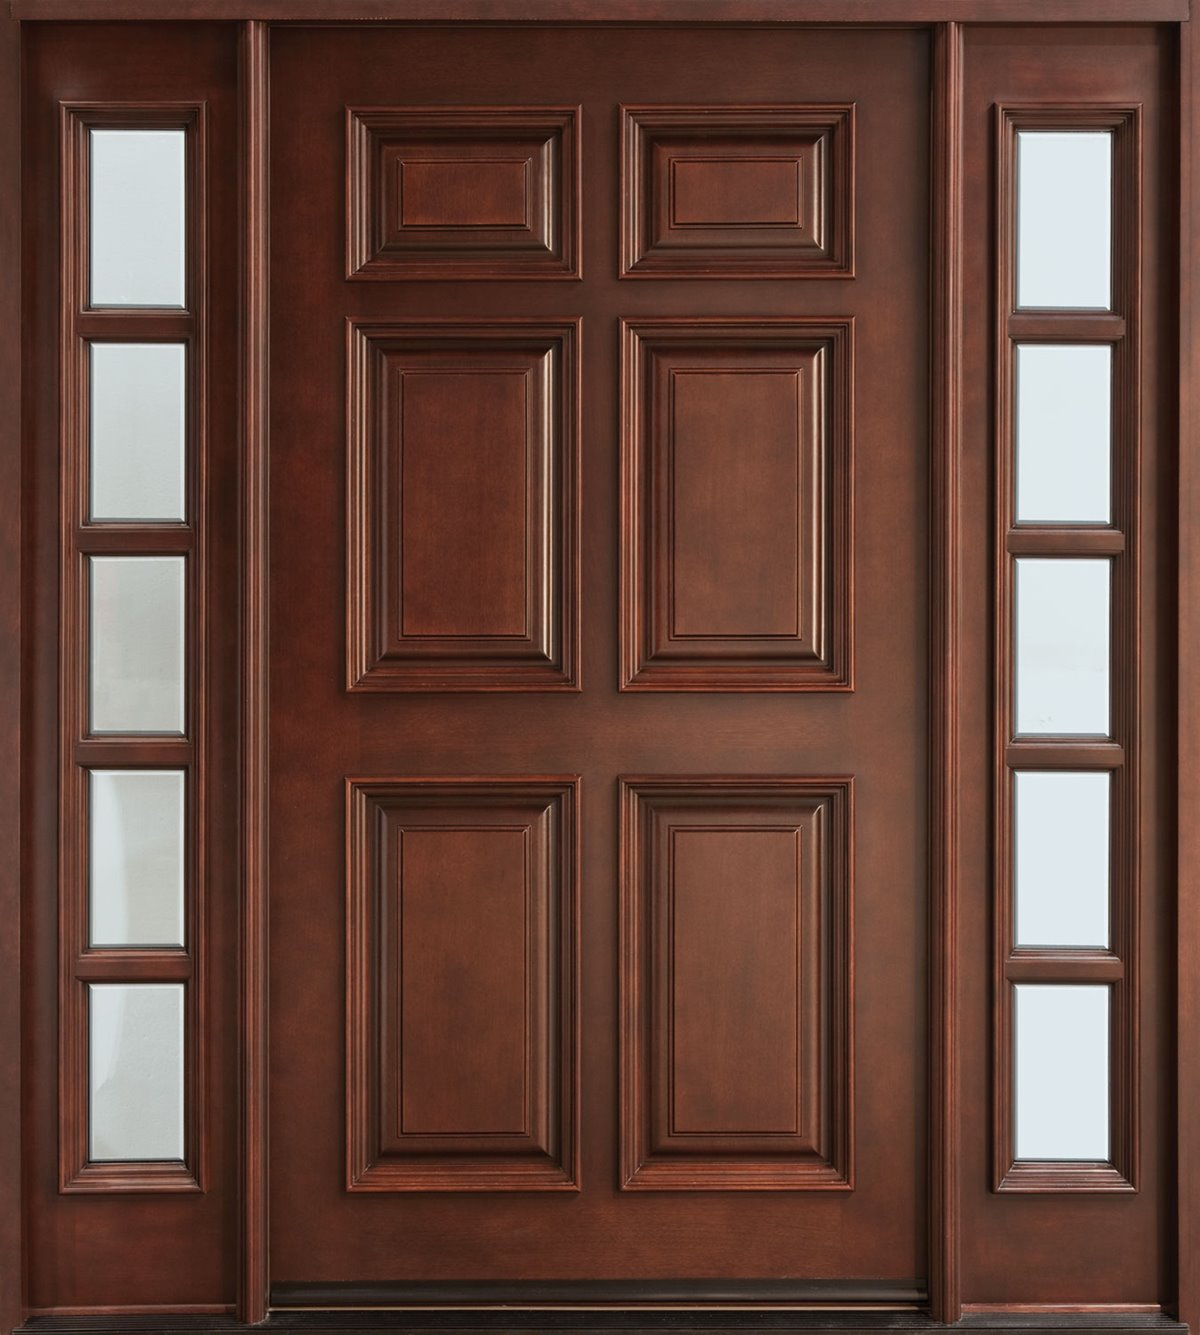 1335 #40251B When The Idea Of Each Member Of The Family Of Minimalist House Door  picture/photo Wooden Outside Doors 43991200